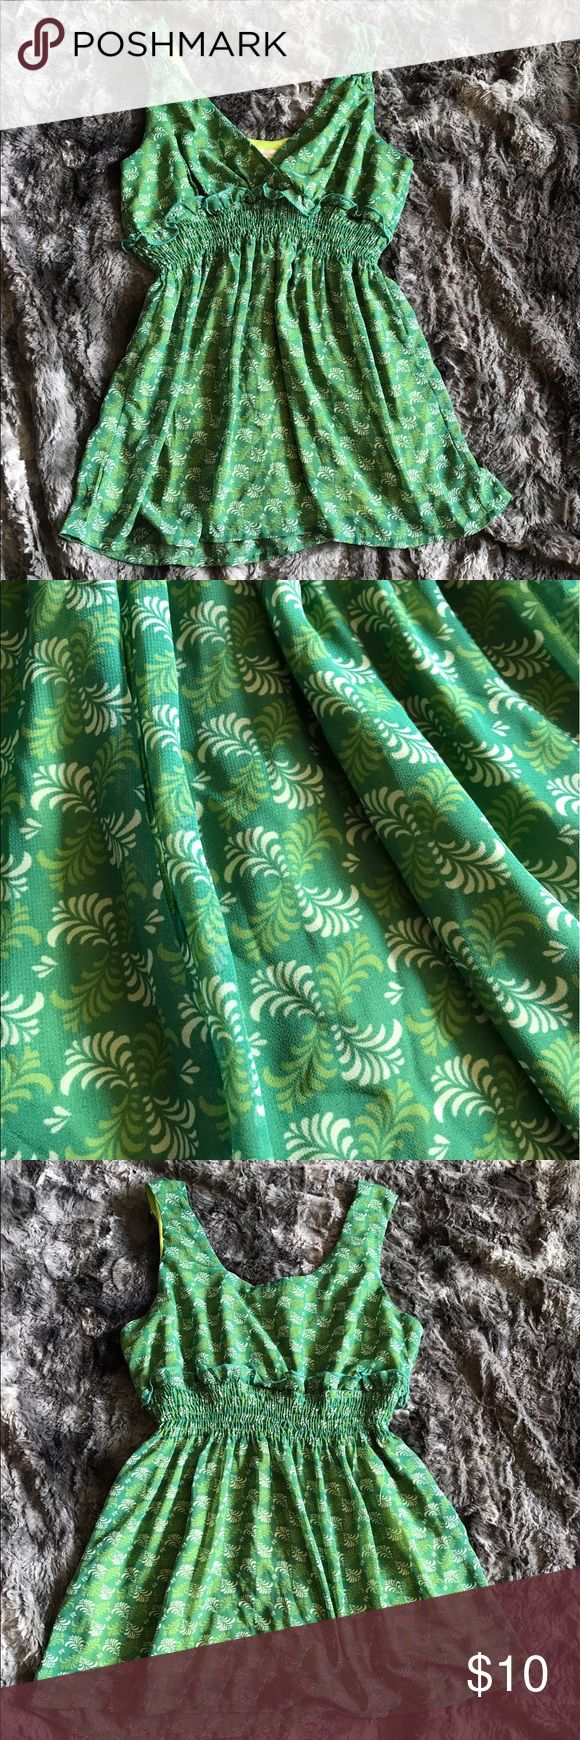 """Womens small green tank top smocked empire waist Womens small tank top by Jonathan Martin. It is green floral print with a smocked empire waist. It is a v-neck and v-back style. Perfect for summer. In excellent condition! Length-26"""" armpit to armpit-17"""" jonathan martin Tops Tank Tops"""